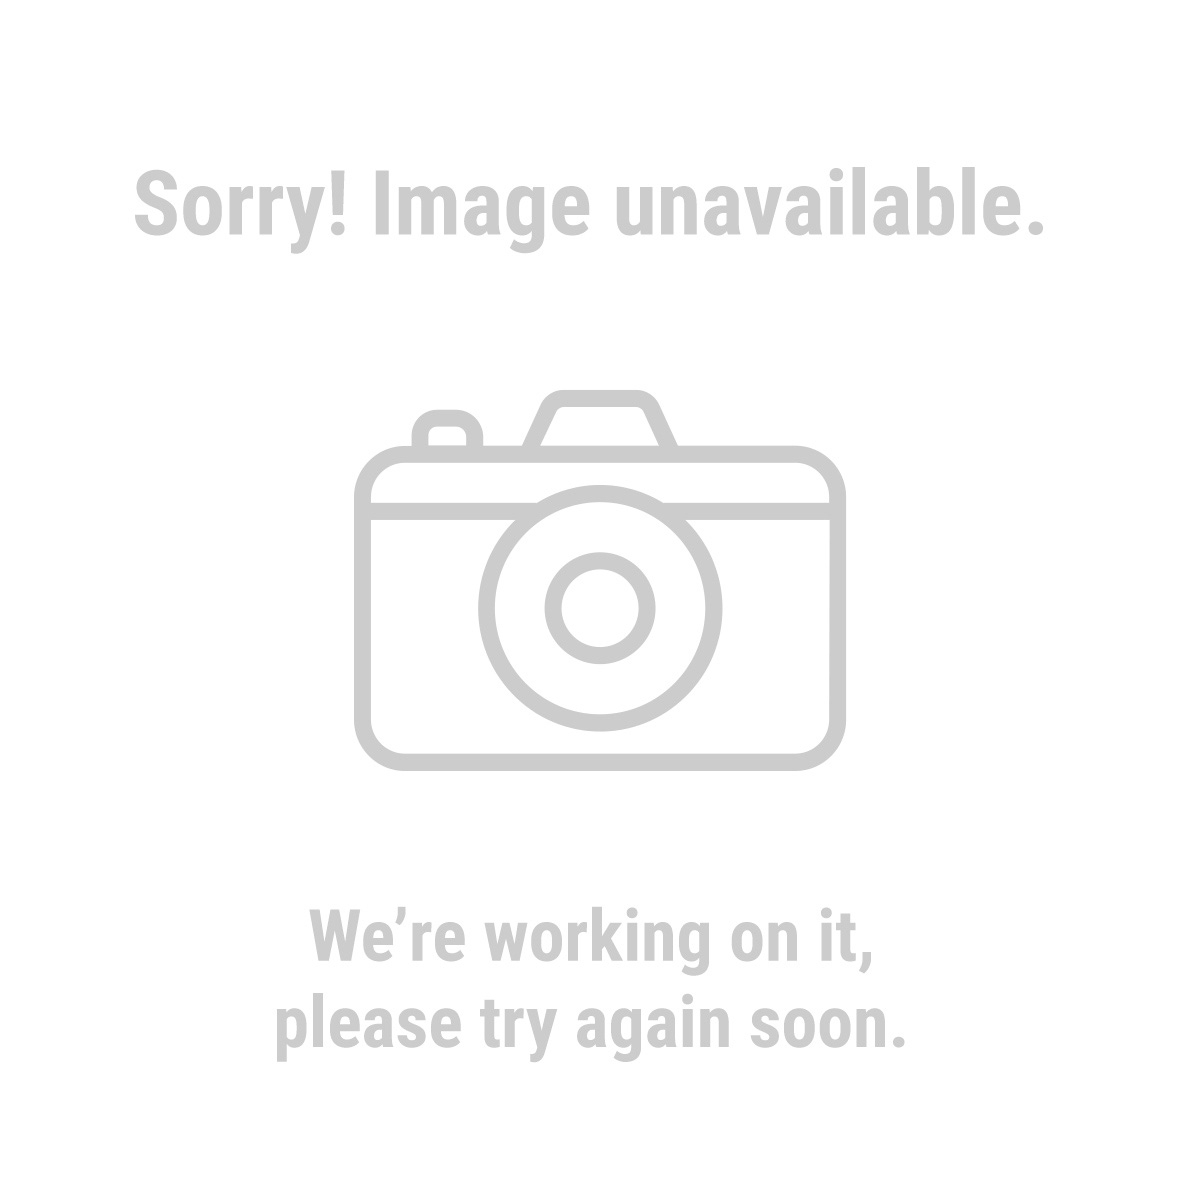 "Central Forge 92305 1-1/2"" Single Wheel Rope Pulley, 2 Piece Set"